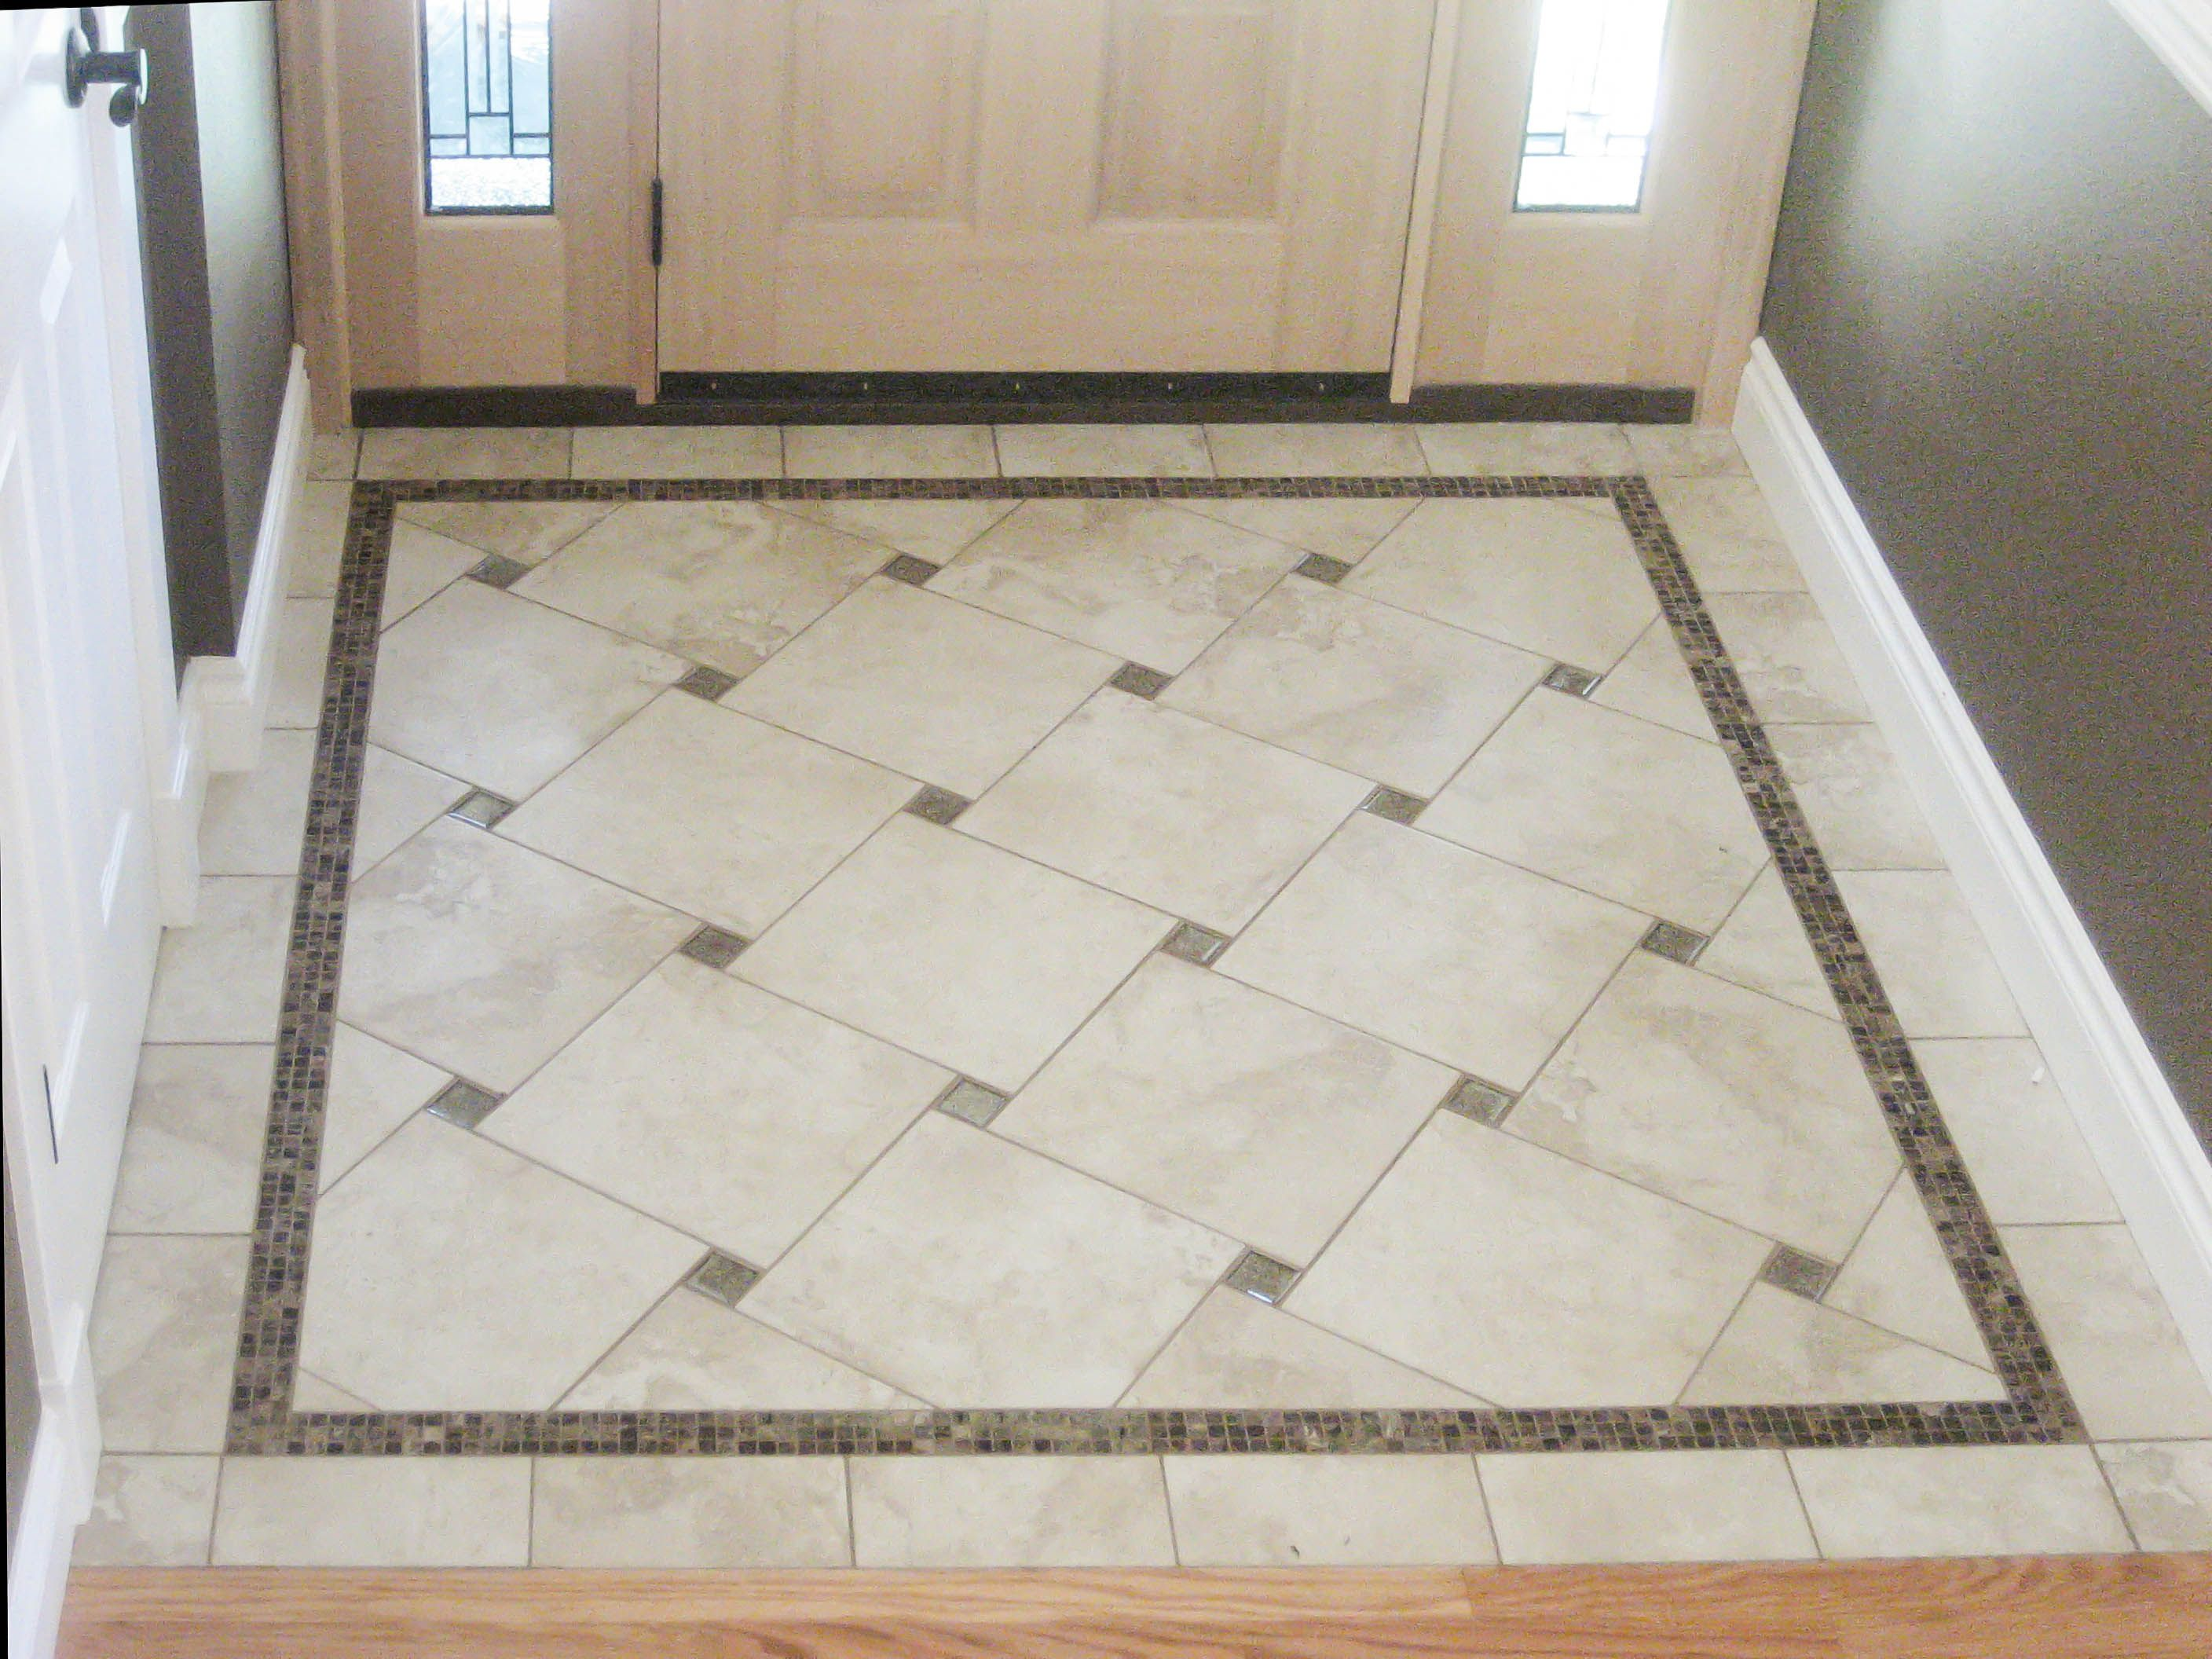 entry floor tile ideas entry floor photos gallery seattle tile contractor irc tile - Tile Designs For Bathroom Floors